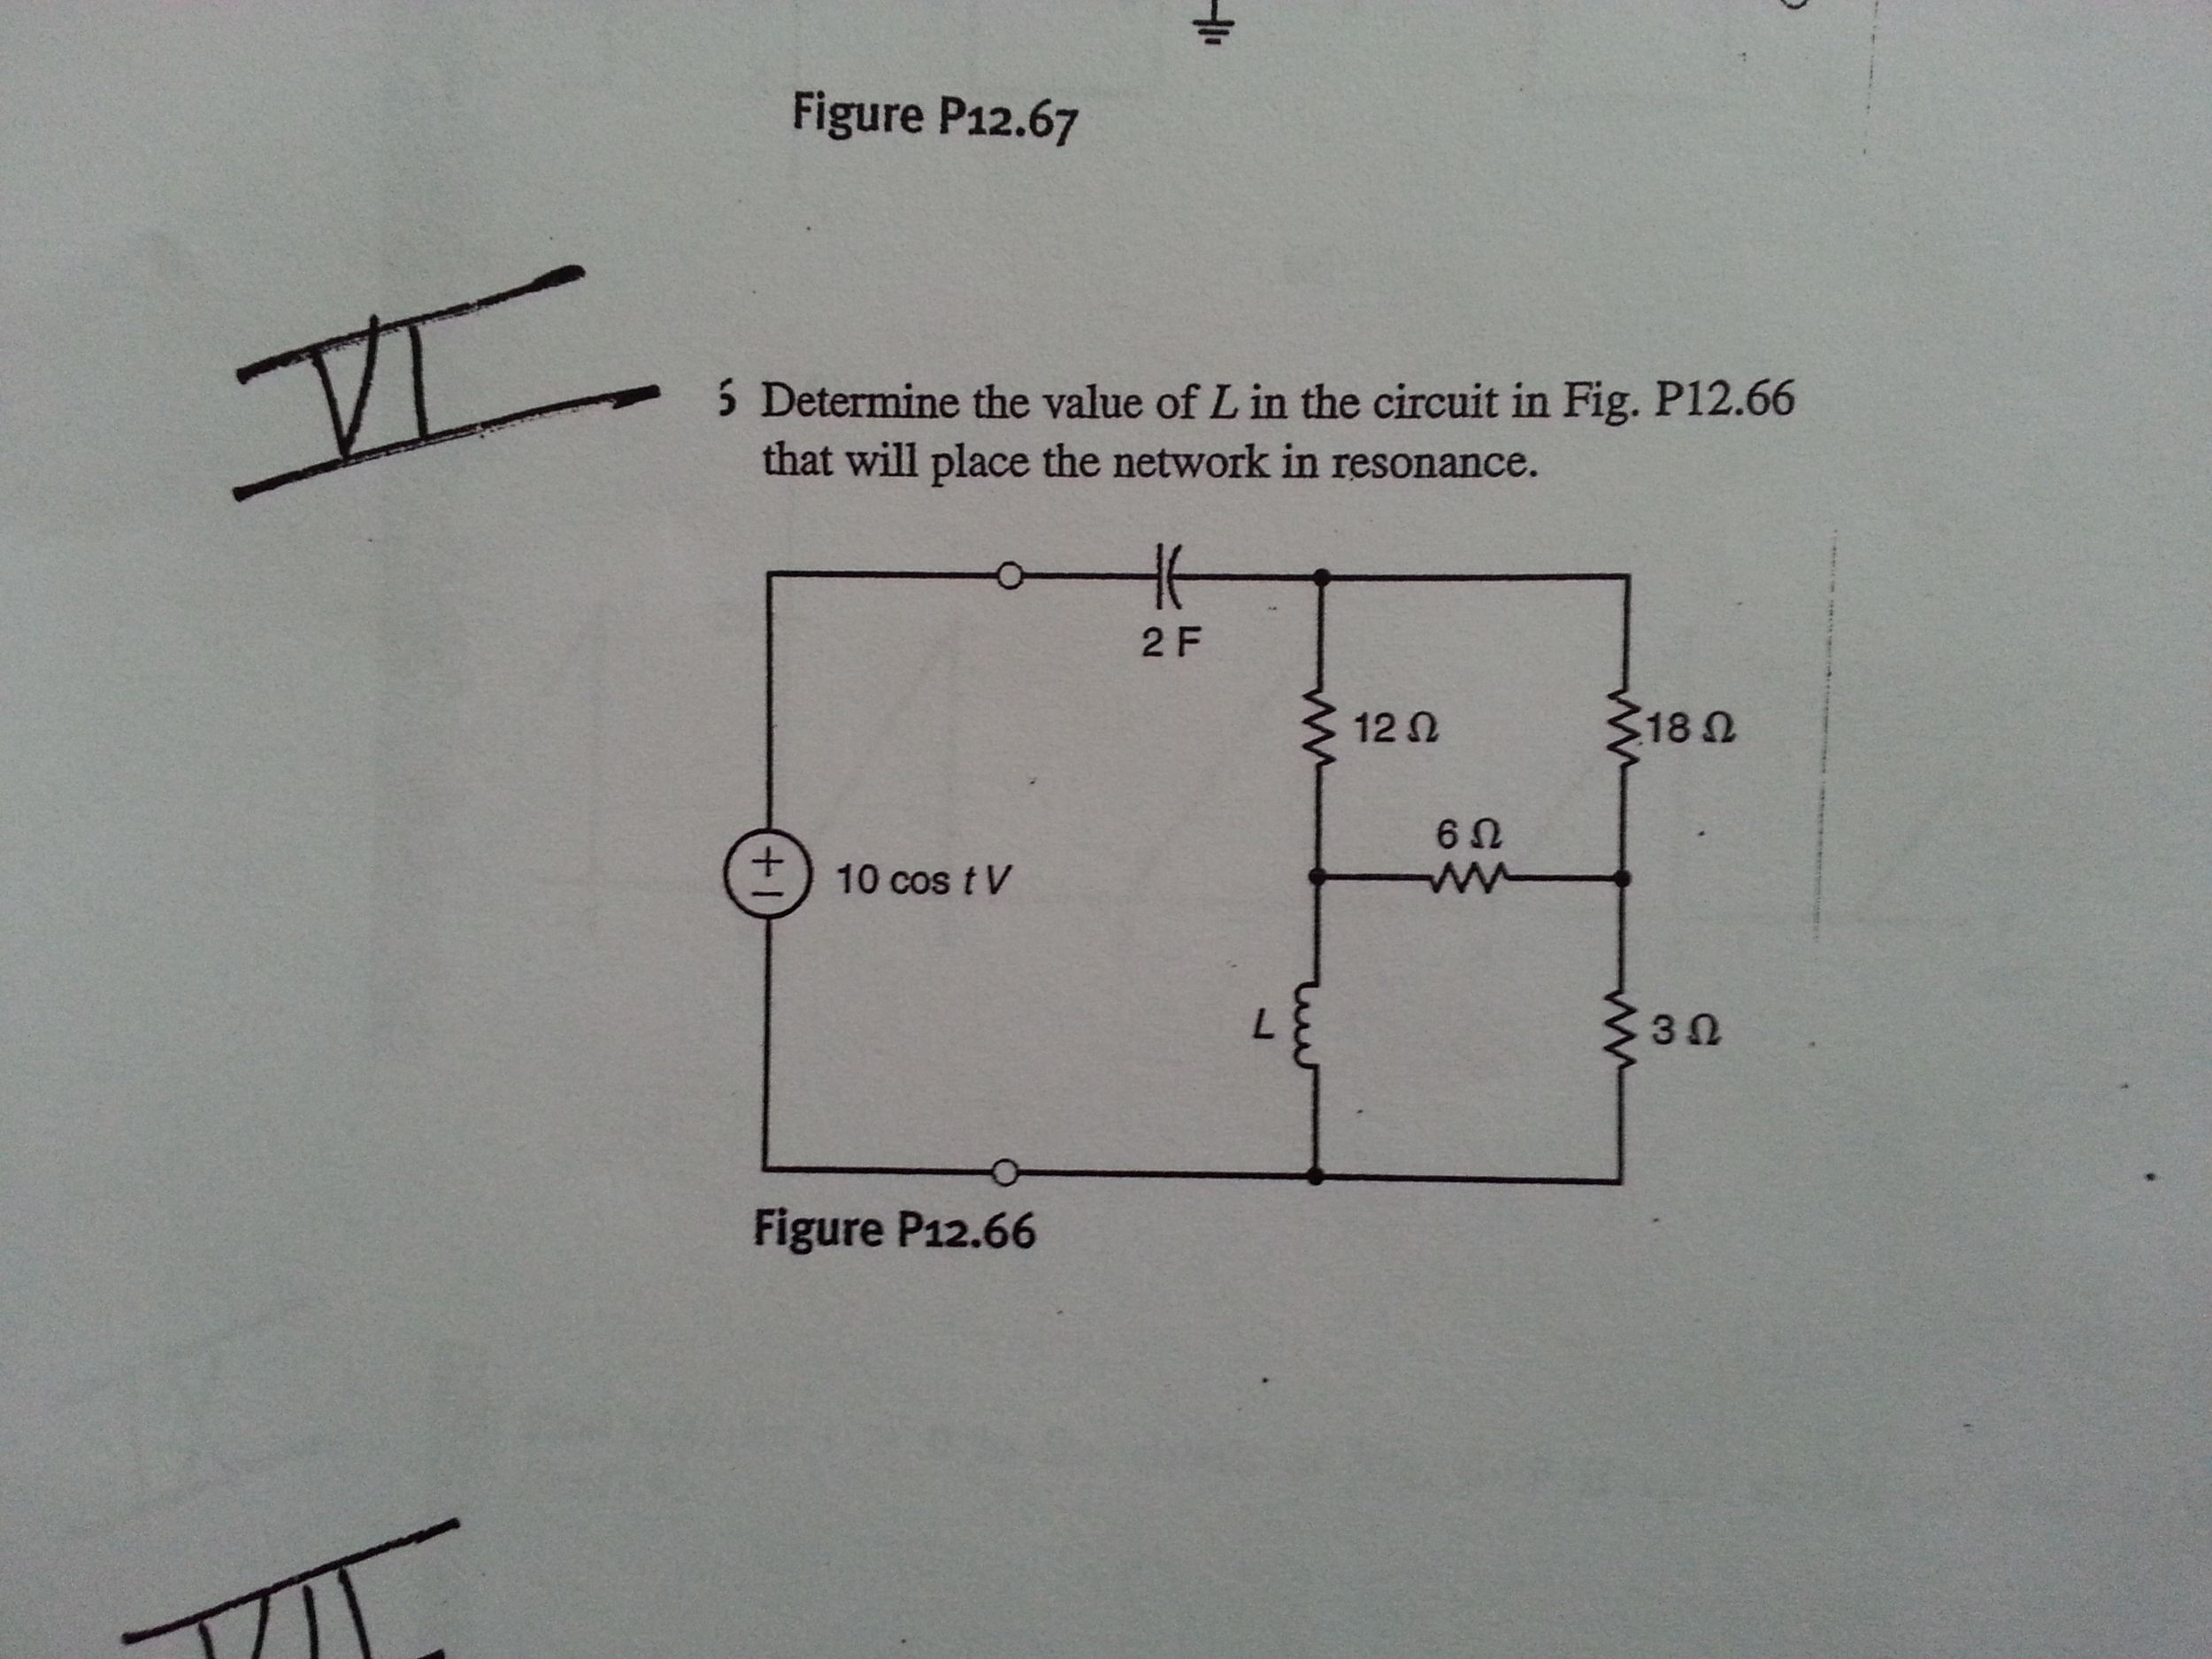 Determine the value of L in the circuit in Fig. P